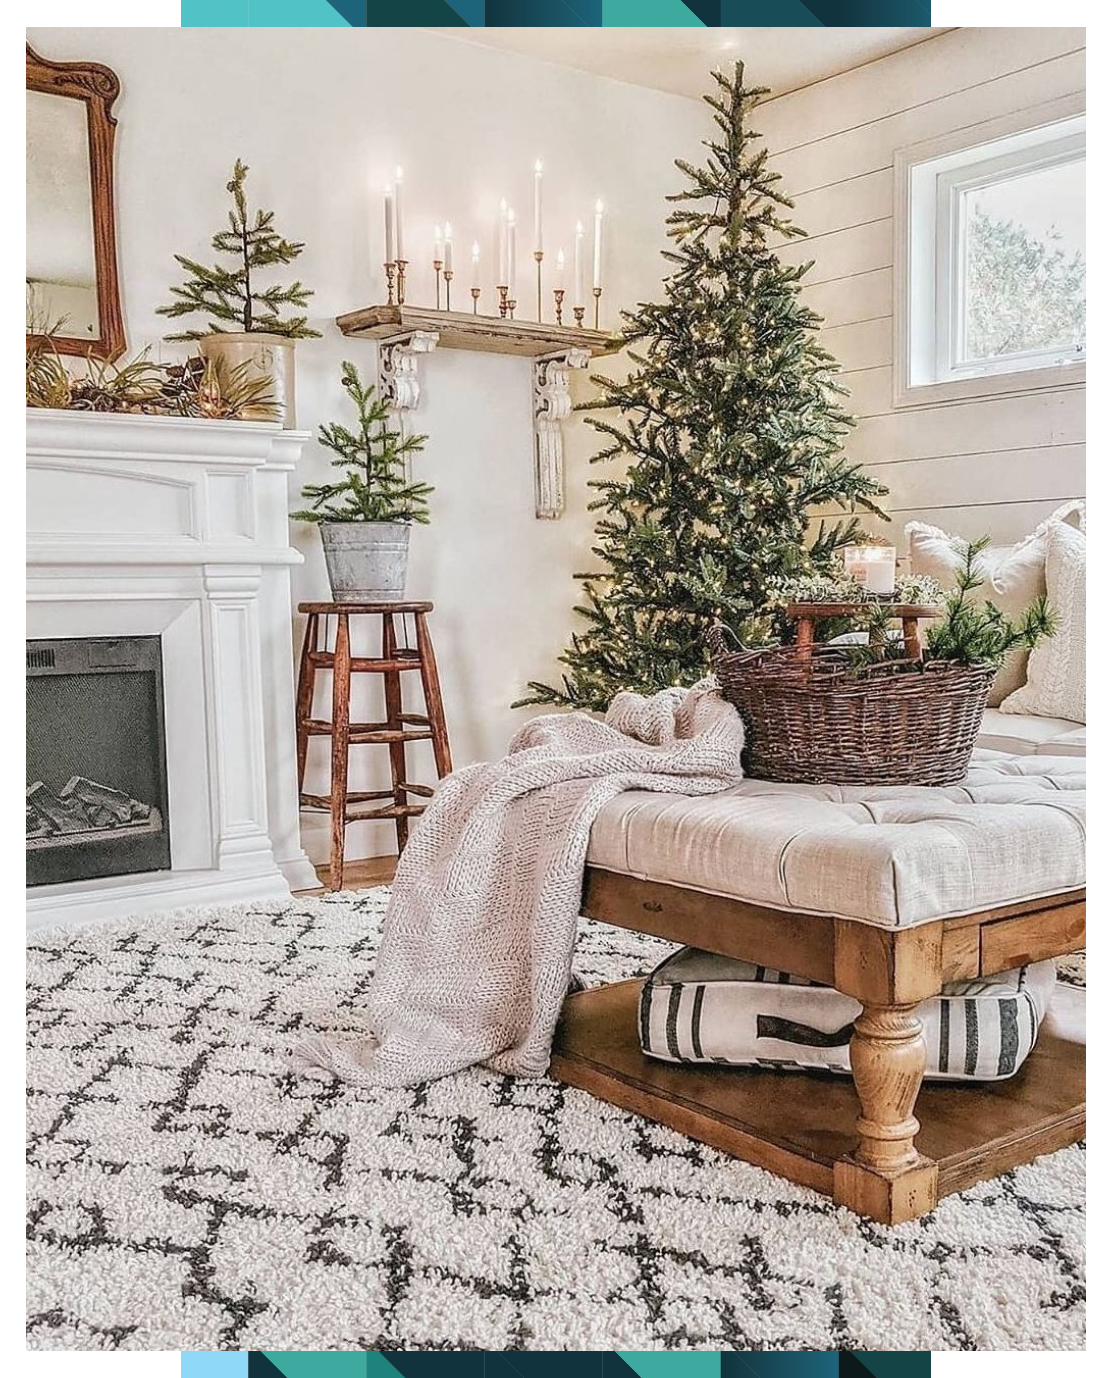 Farmhouse Fanatics on Instagram Anyone have any good Christmas song recommendations   ourforeverfarmhouse  ourforeverfarmhouse is WOWing us as usual this